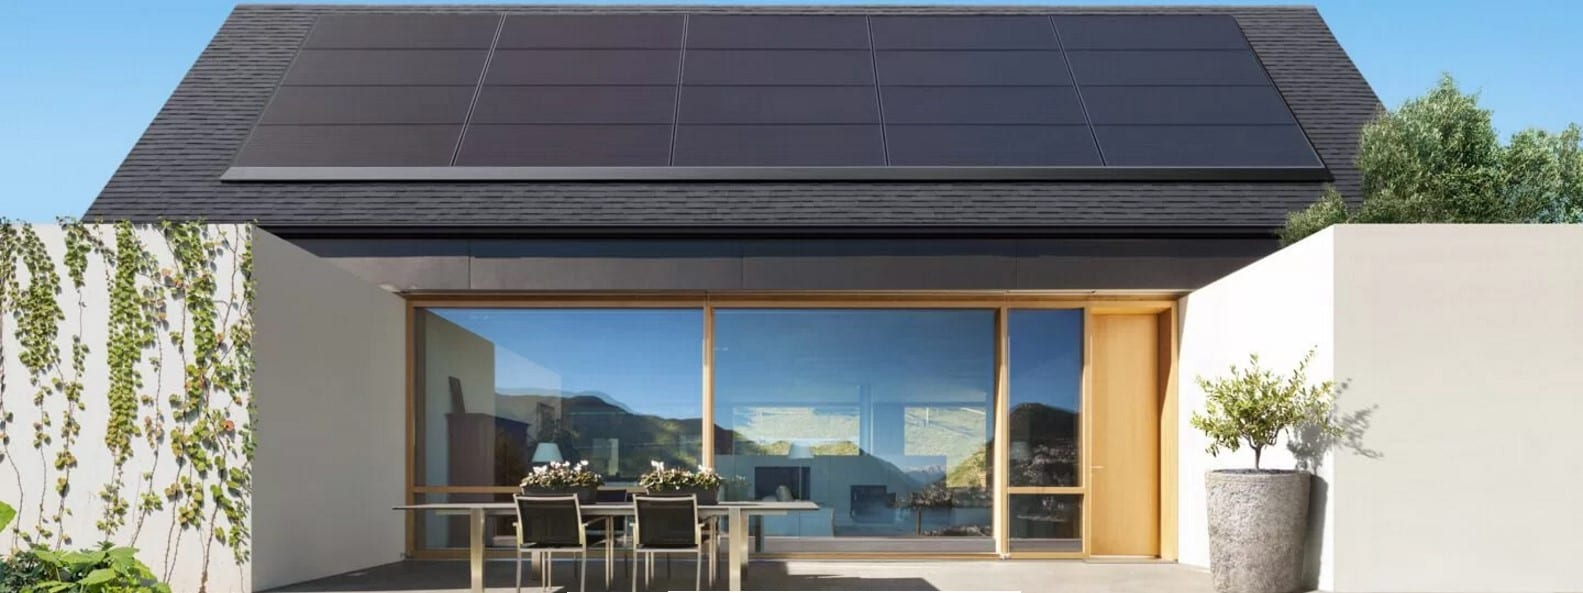 New Solar Panels by Elon Musk of Tesla Inc.